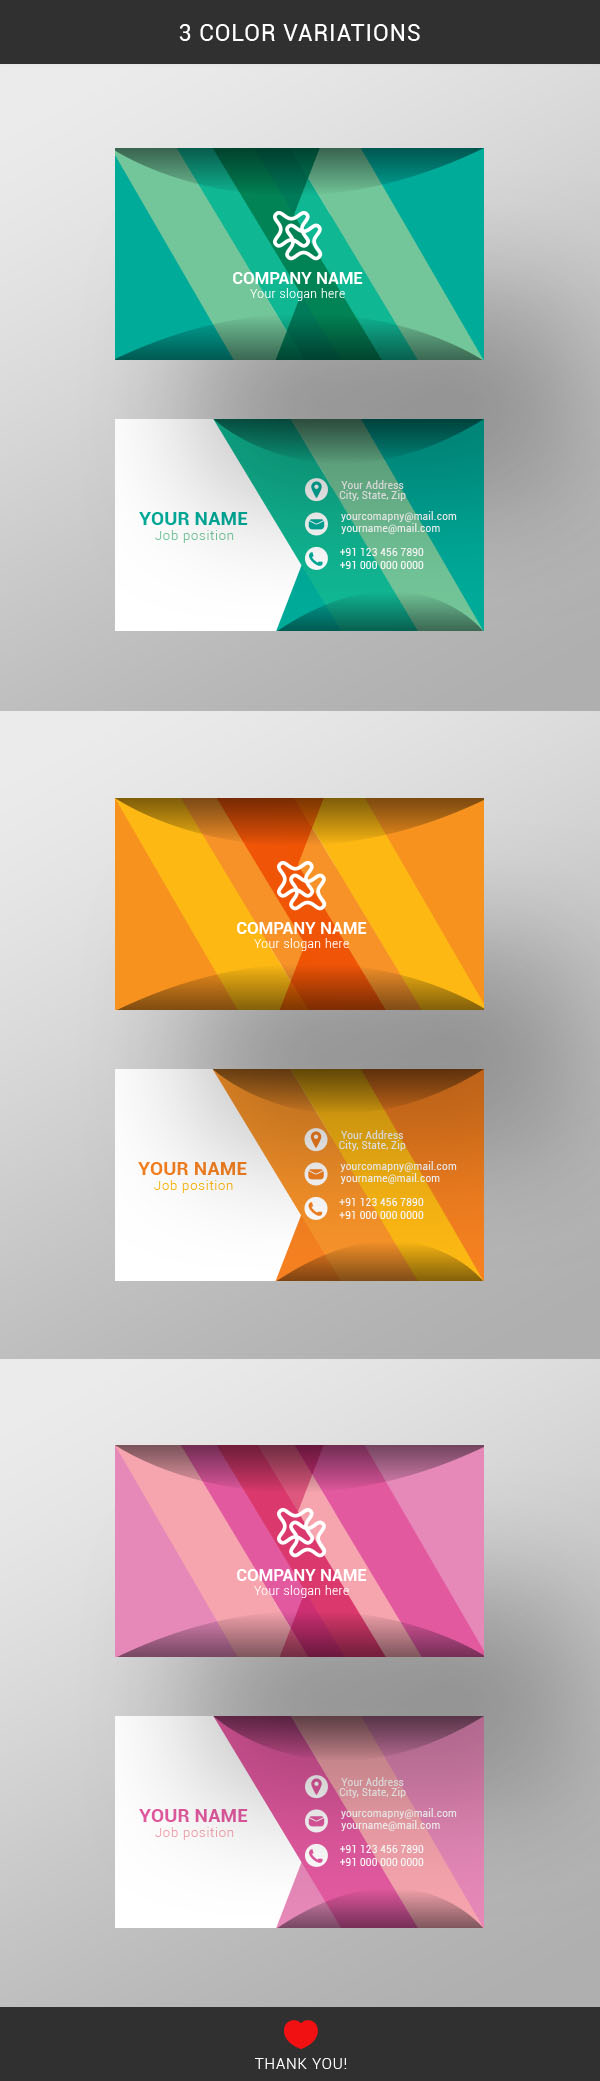 Vector modern business card template free download wisxi abstract business card design business creative graphic layout template colourmoves